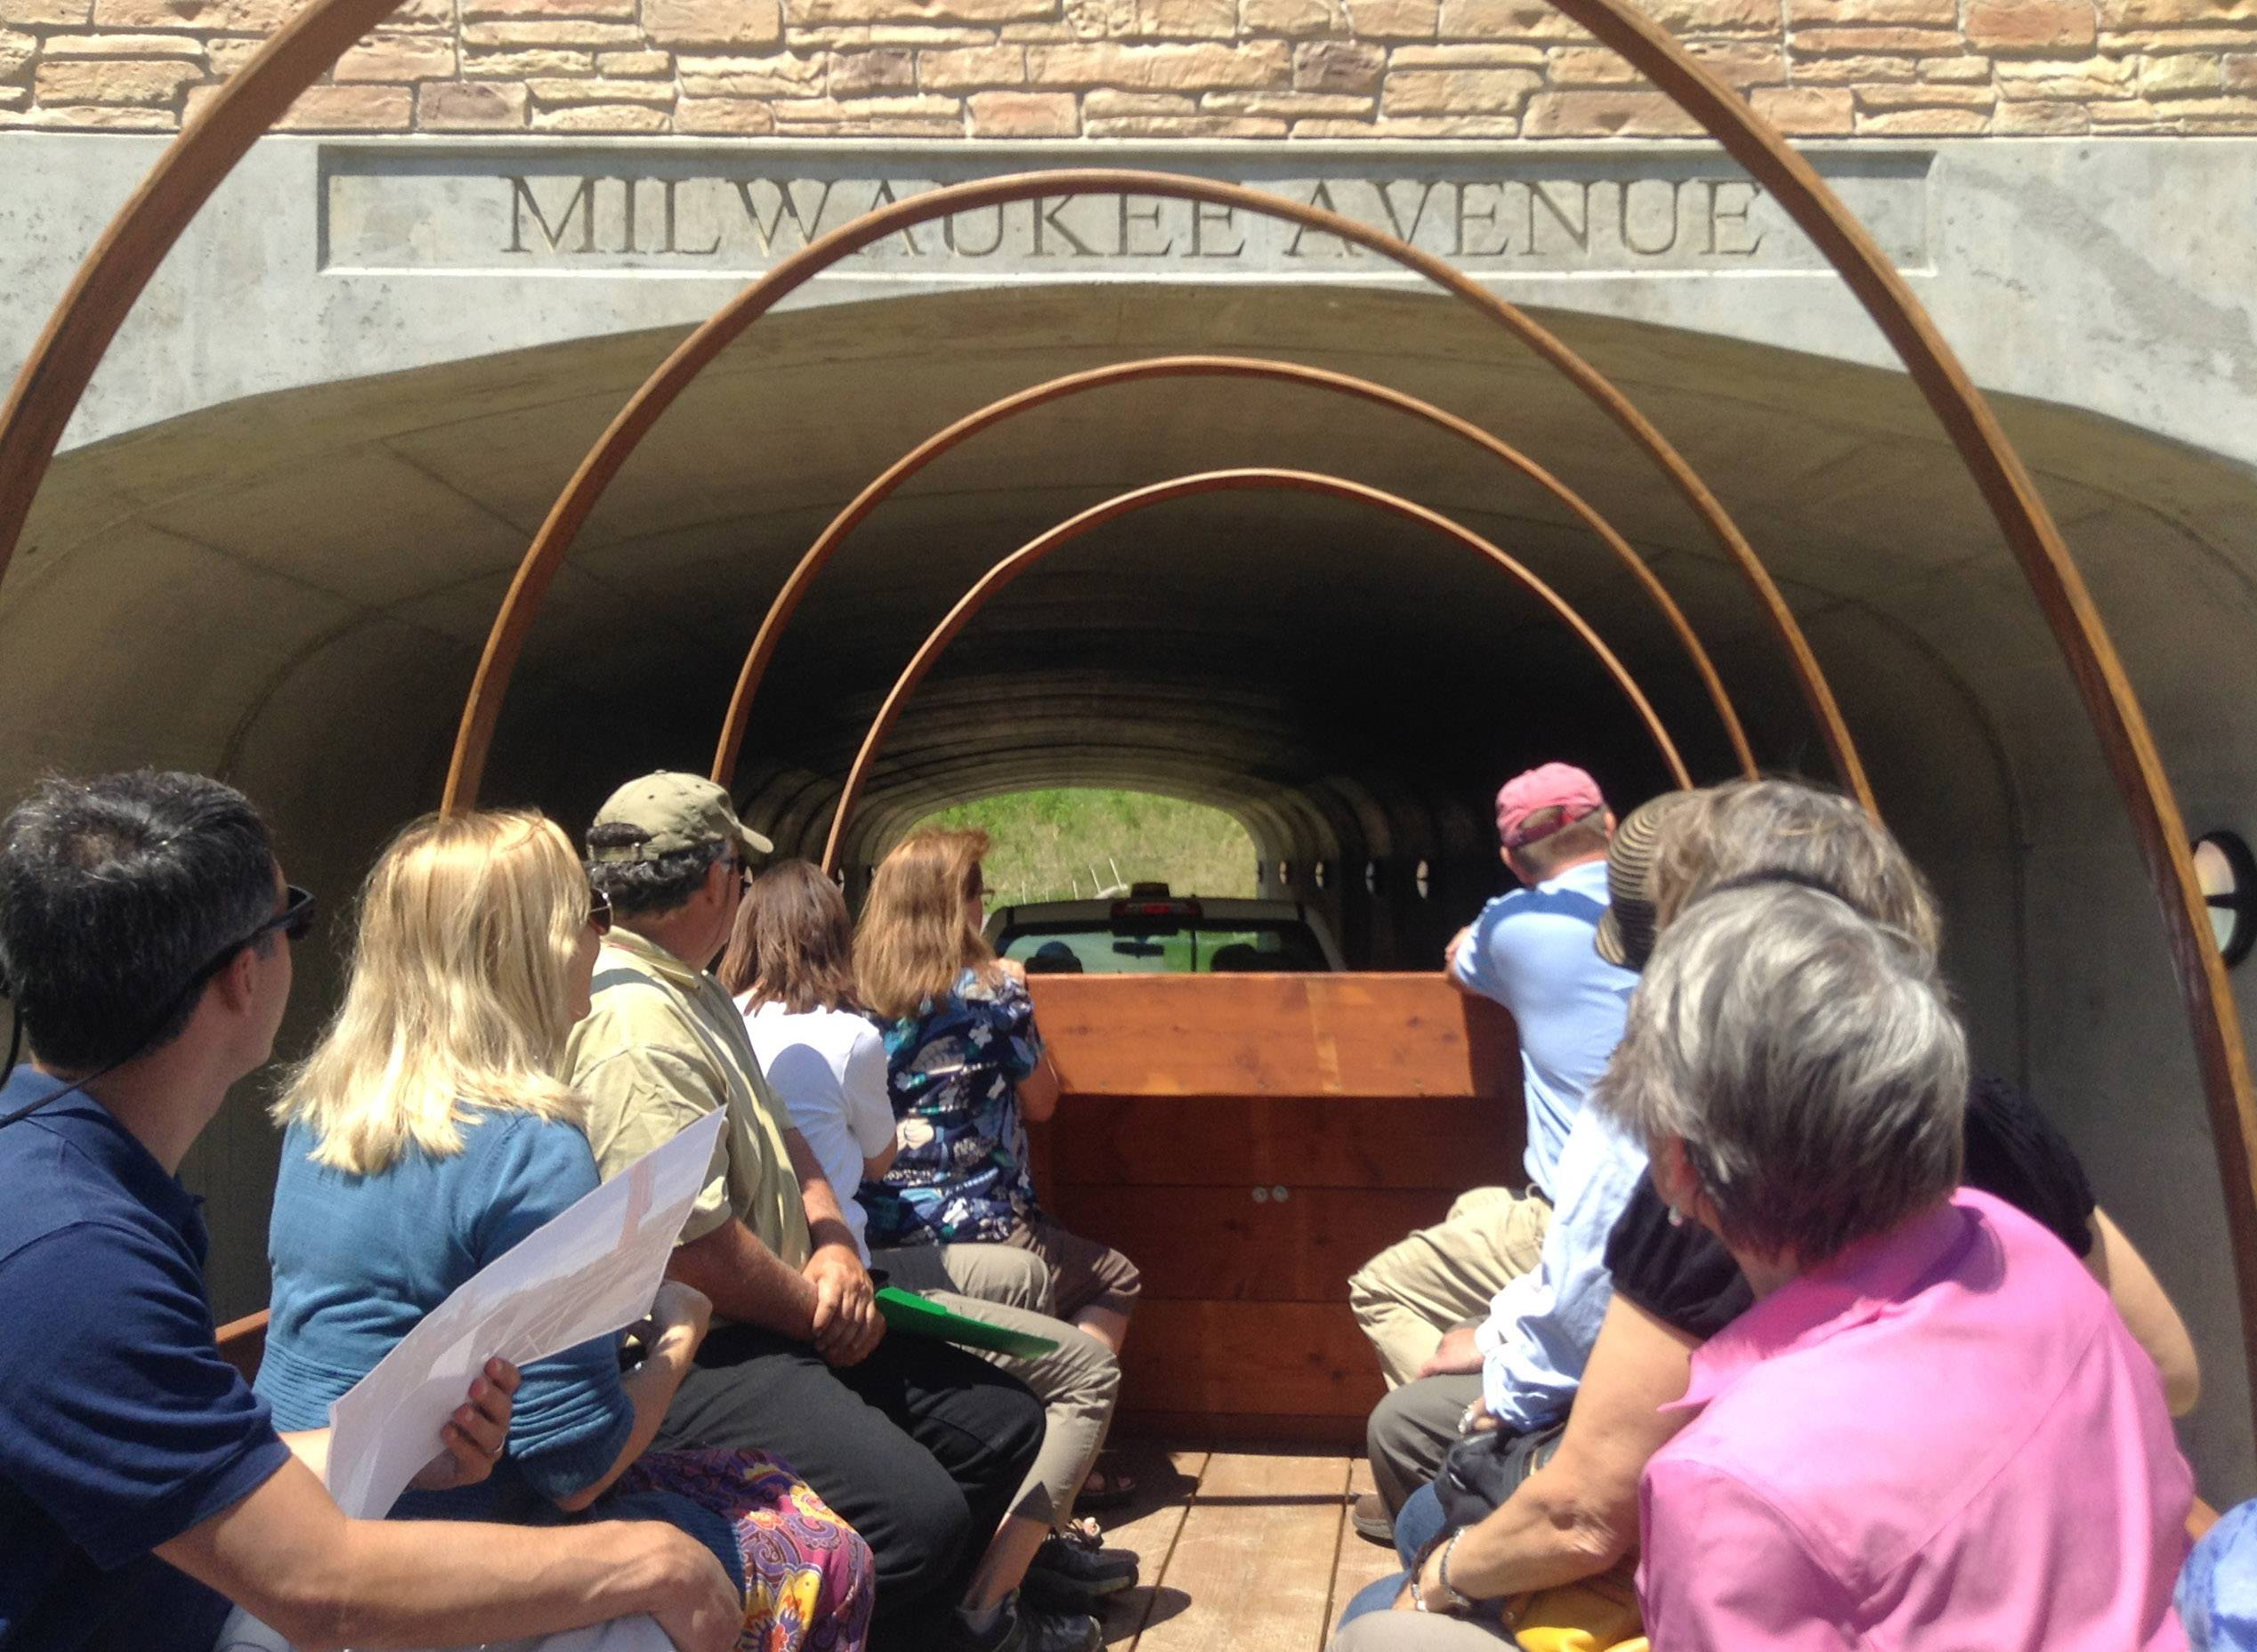 A group Thursday tours a new section of trail that features an underpass beneath Milwaukee Avenue near Libertyville. That allowed for the connection of the Libertyville Township trail to the Des Plaines River Trail.